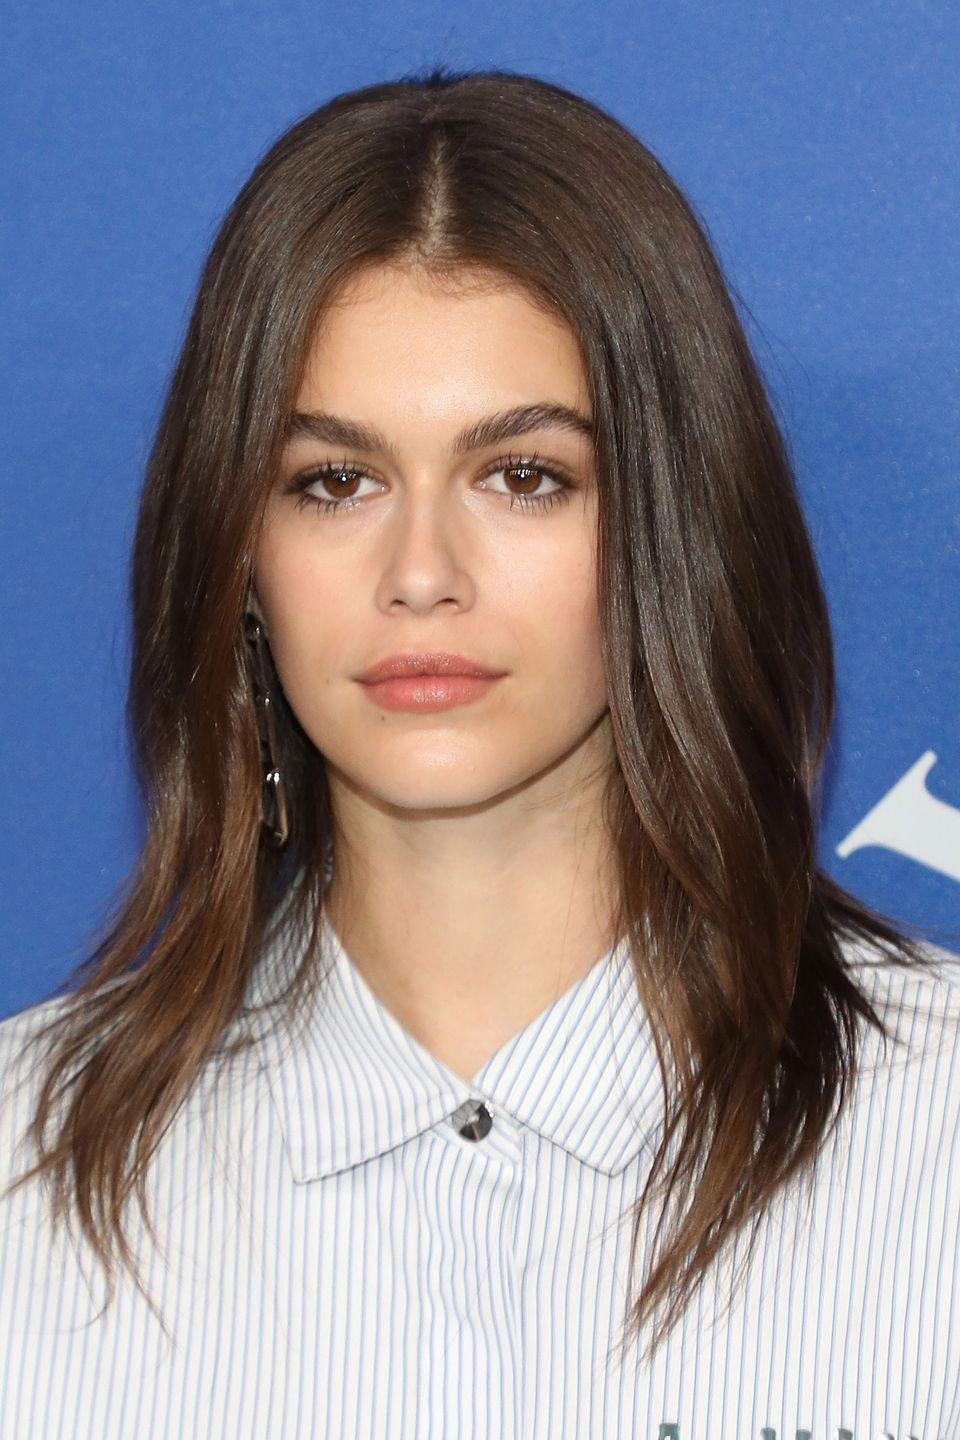 """<p>While face-shaping layers like those cut into Kaia Gerber's hair are mainly the work of a <a href=""""https://www.harpersbazaar.com/uk/beauty/spas-salons/g22469/best-hair-salons/"""" rel=""""nofollow noopener"""" target=""""_blank"""" data-ylk=""""slk:good hairdresser"""" class=""""link rapid-noclick-resp"""">good hairdresser</a>, you can enhance them when straightening your hair by making your hair flick-out at the ends.</p>"""